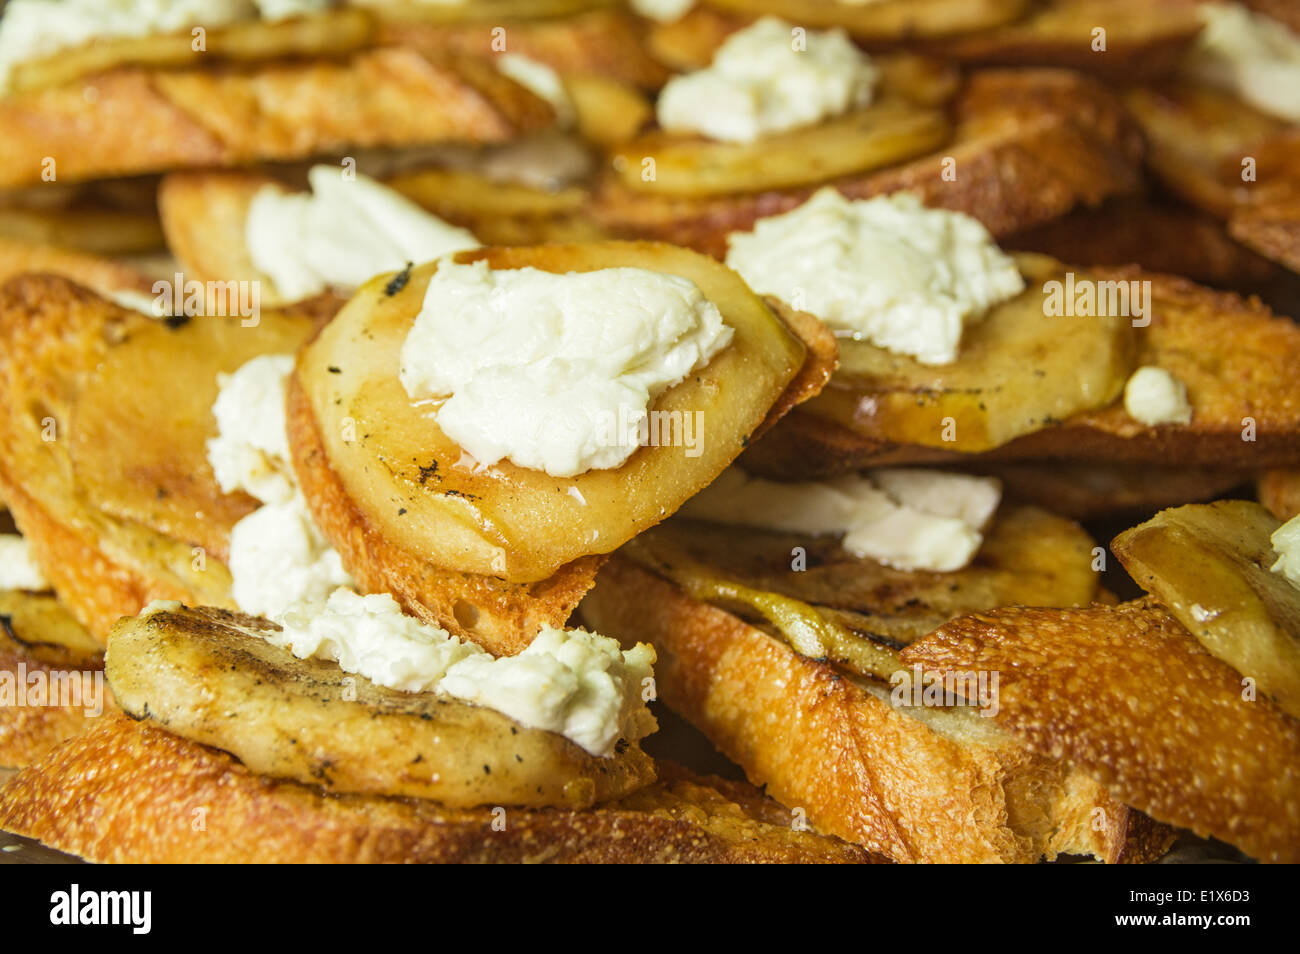 home made pear and goat cheese crostini close up detail - Stock Image